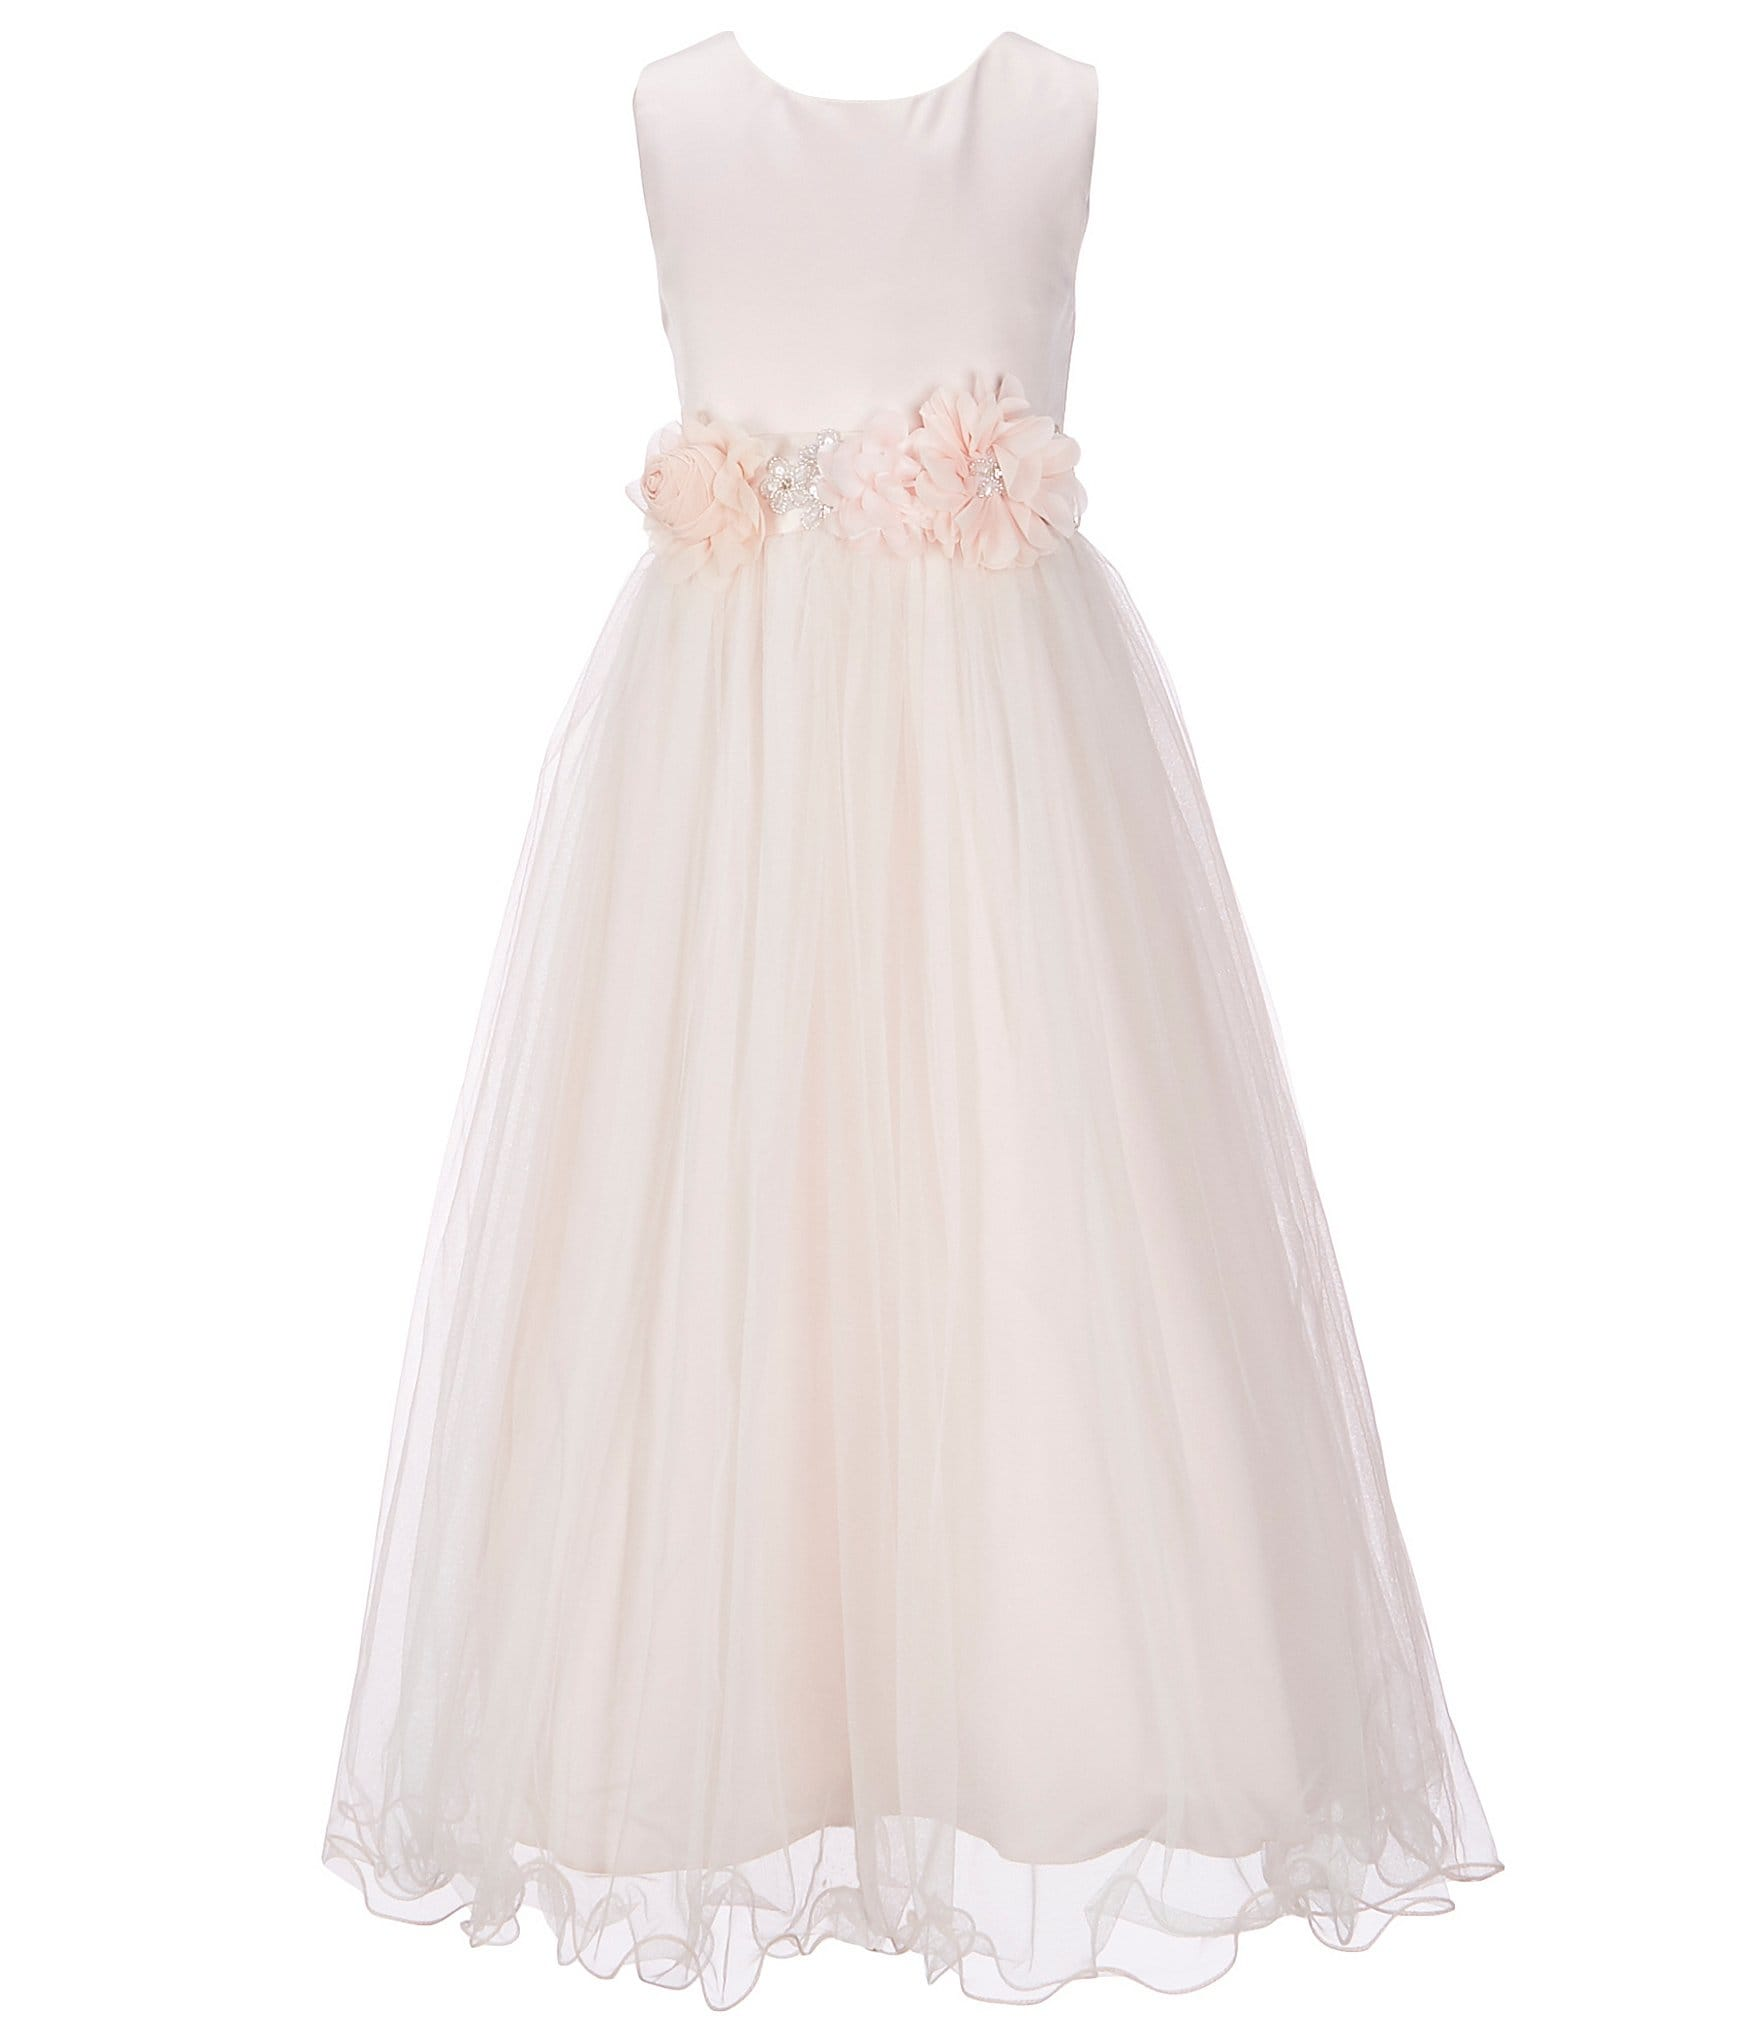 2c465bb24 Girls' Special Occasion Dresses | Dillard's